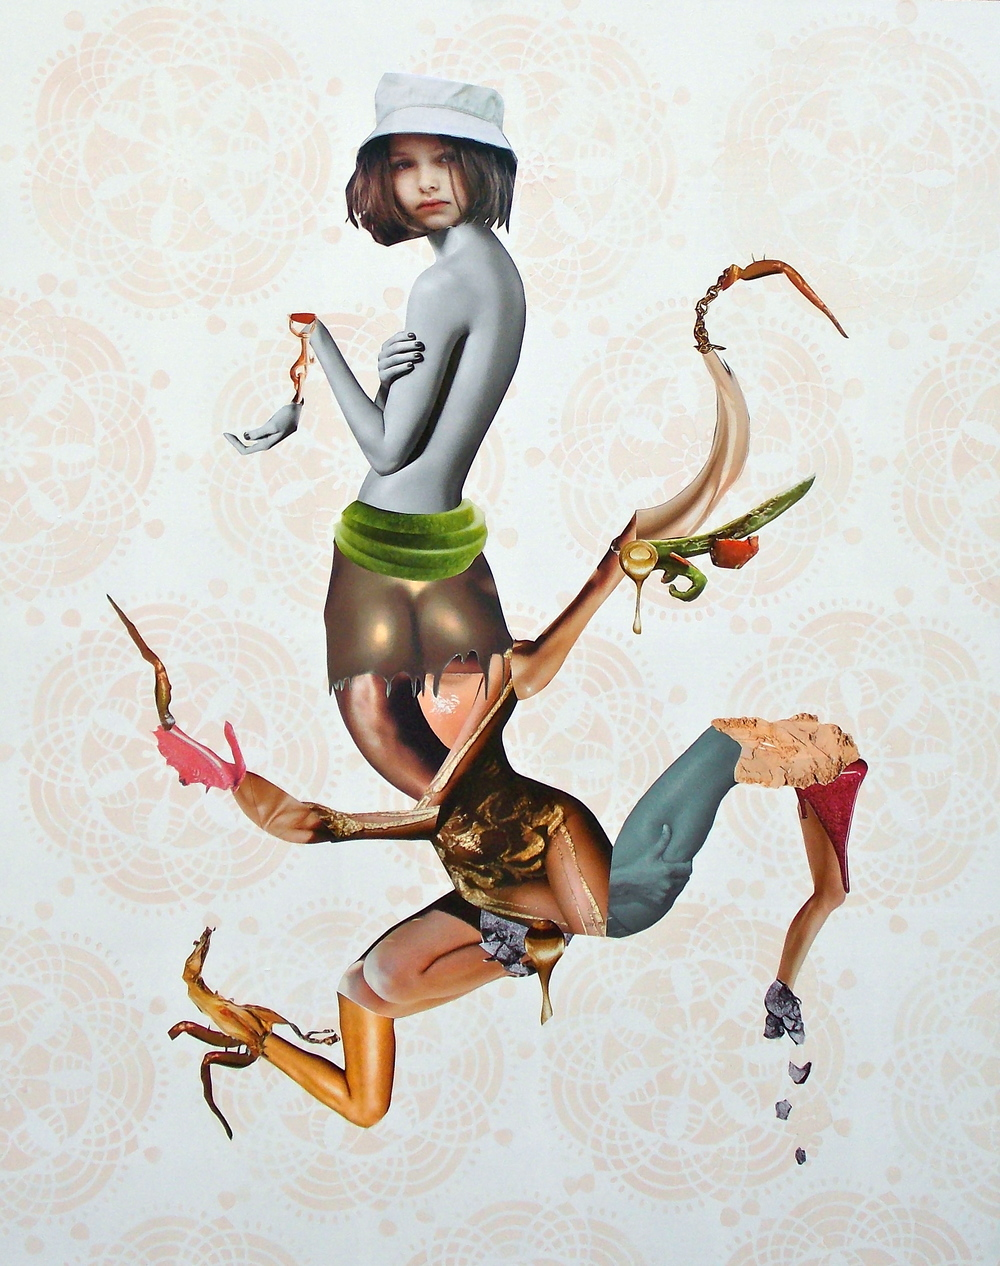 Characteristic Gestures 2,  Acrylic and collage on panel, 2013, 30 x 24""